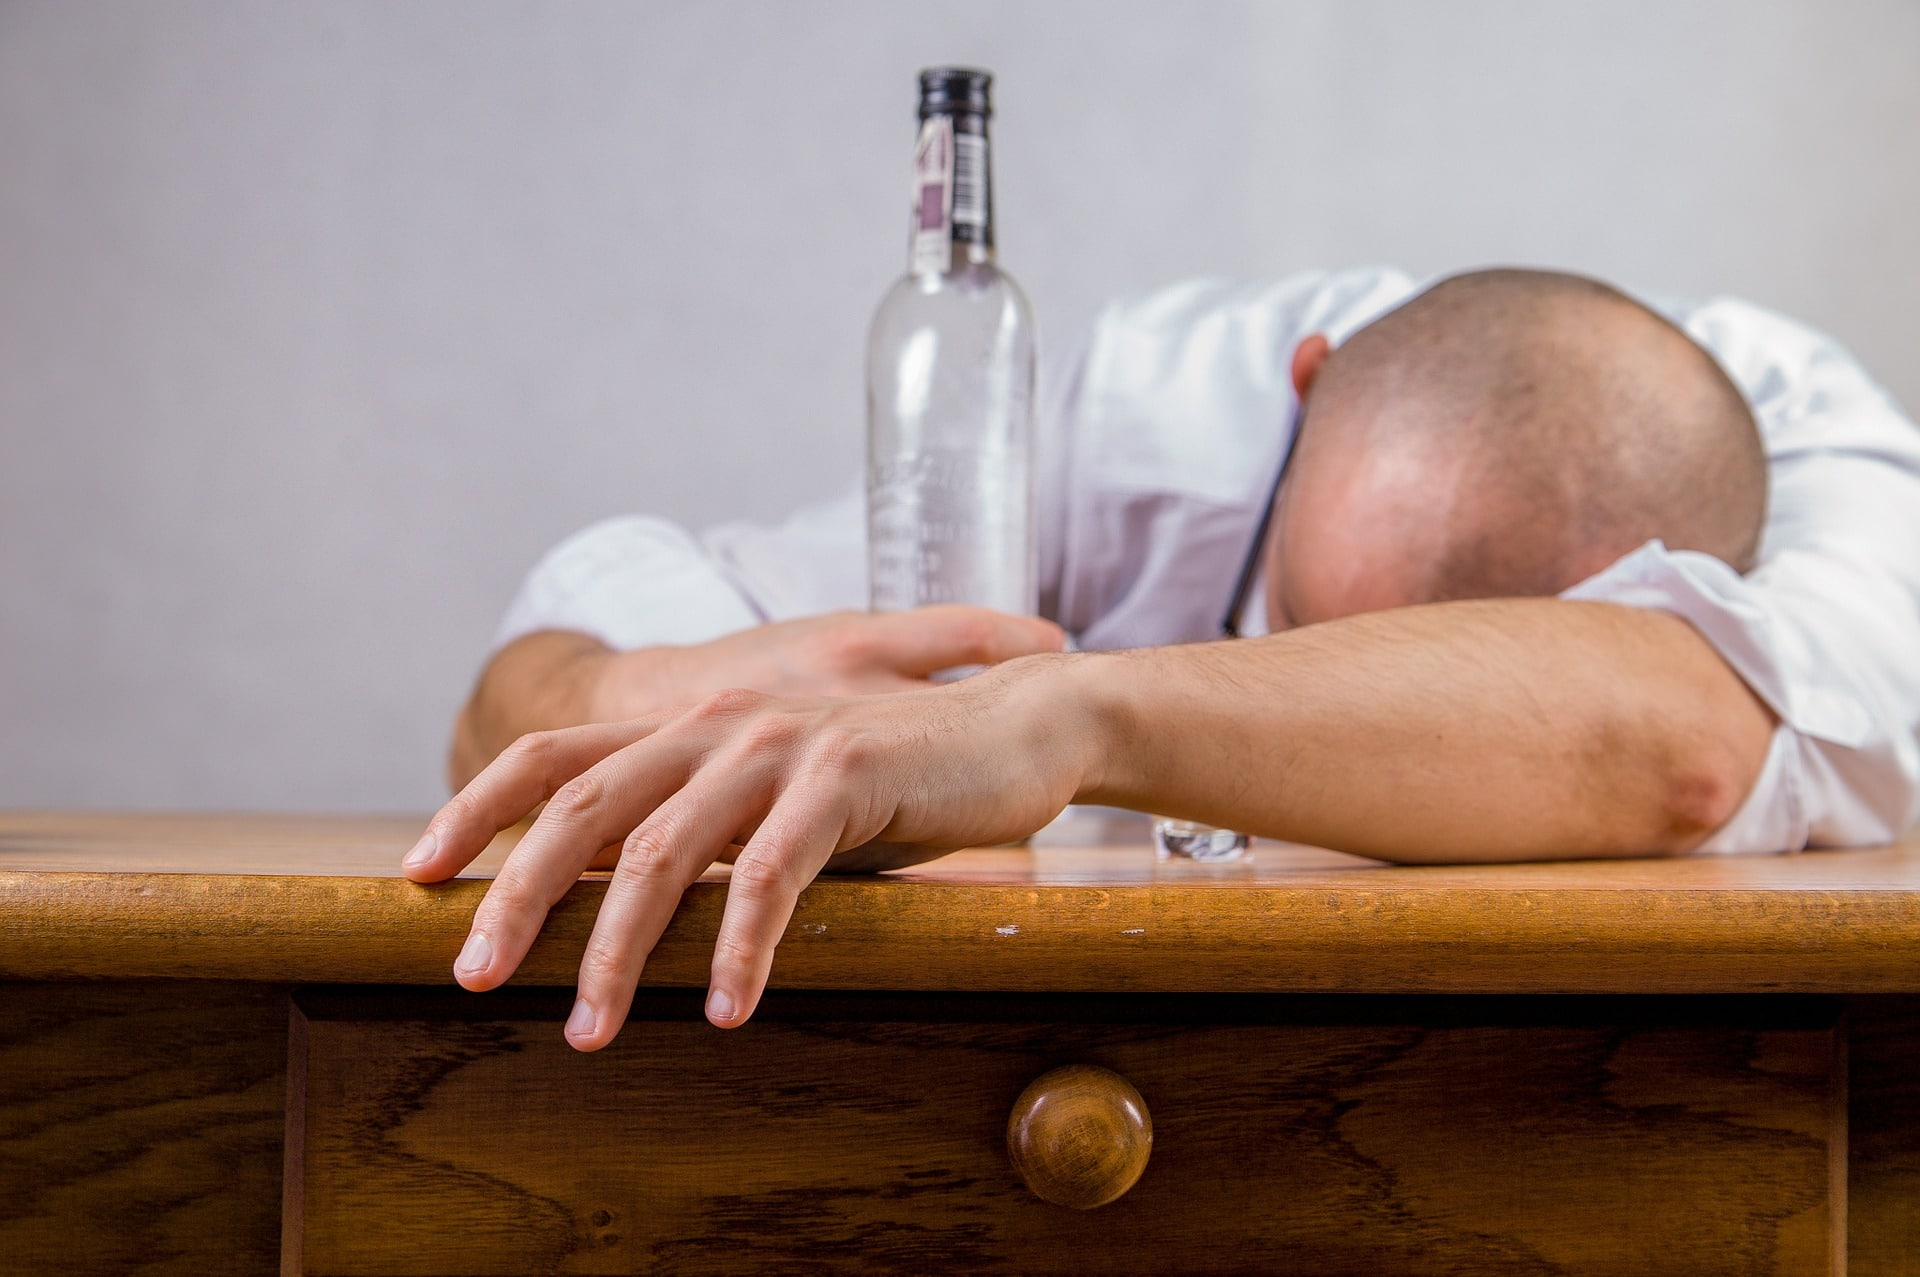 Depressed Man with Alcohol